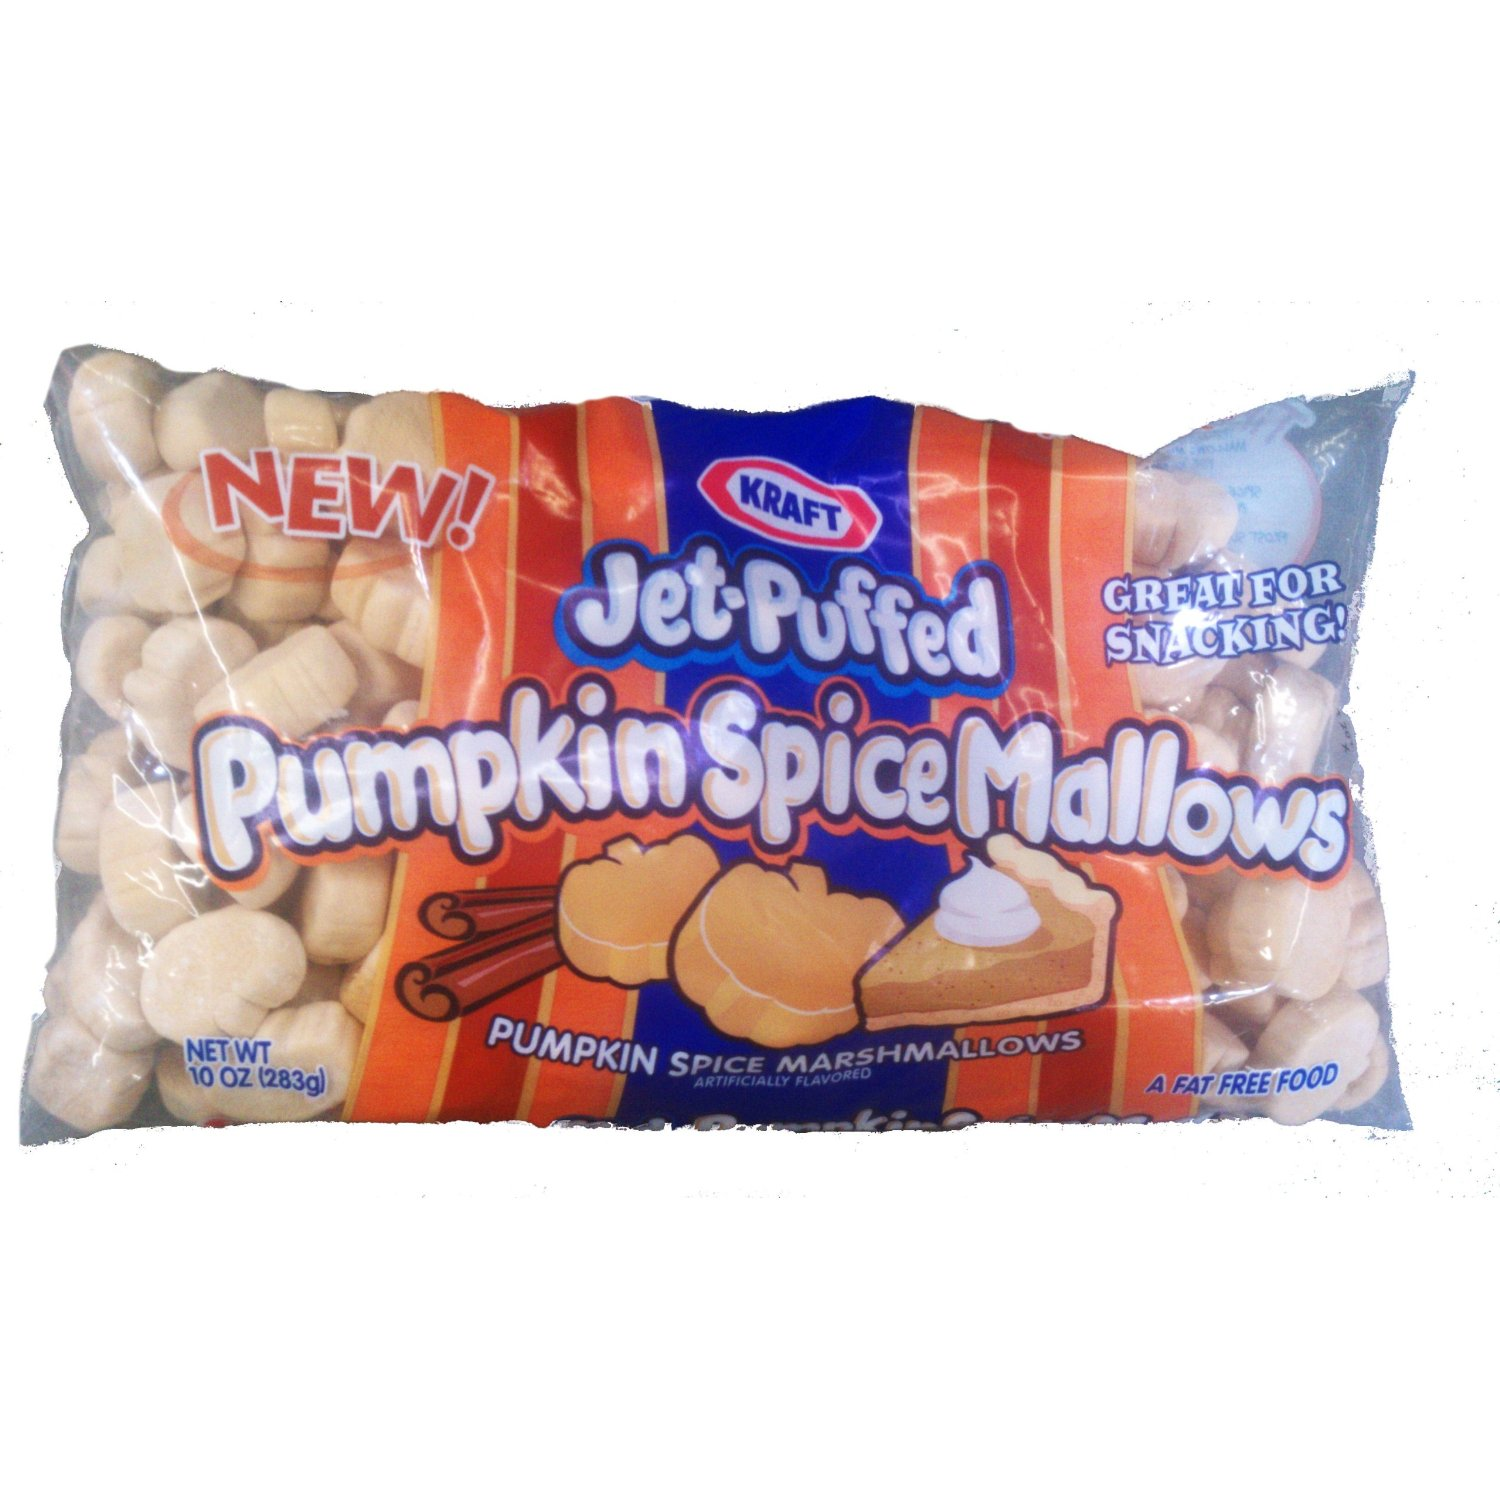 In Pumpkin Spice Flavored Product News... - GrouchyMuffin